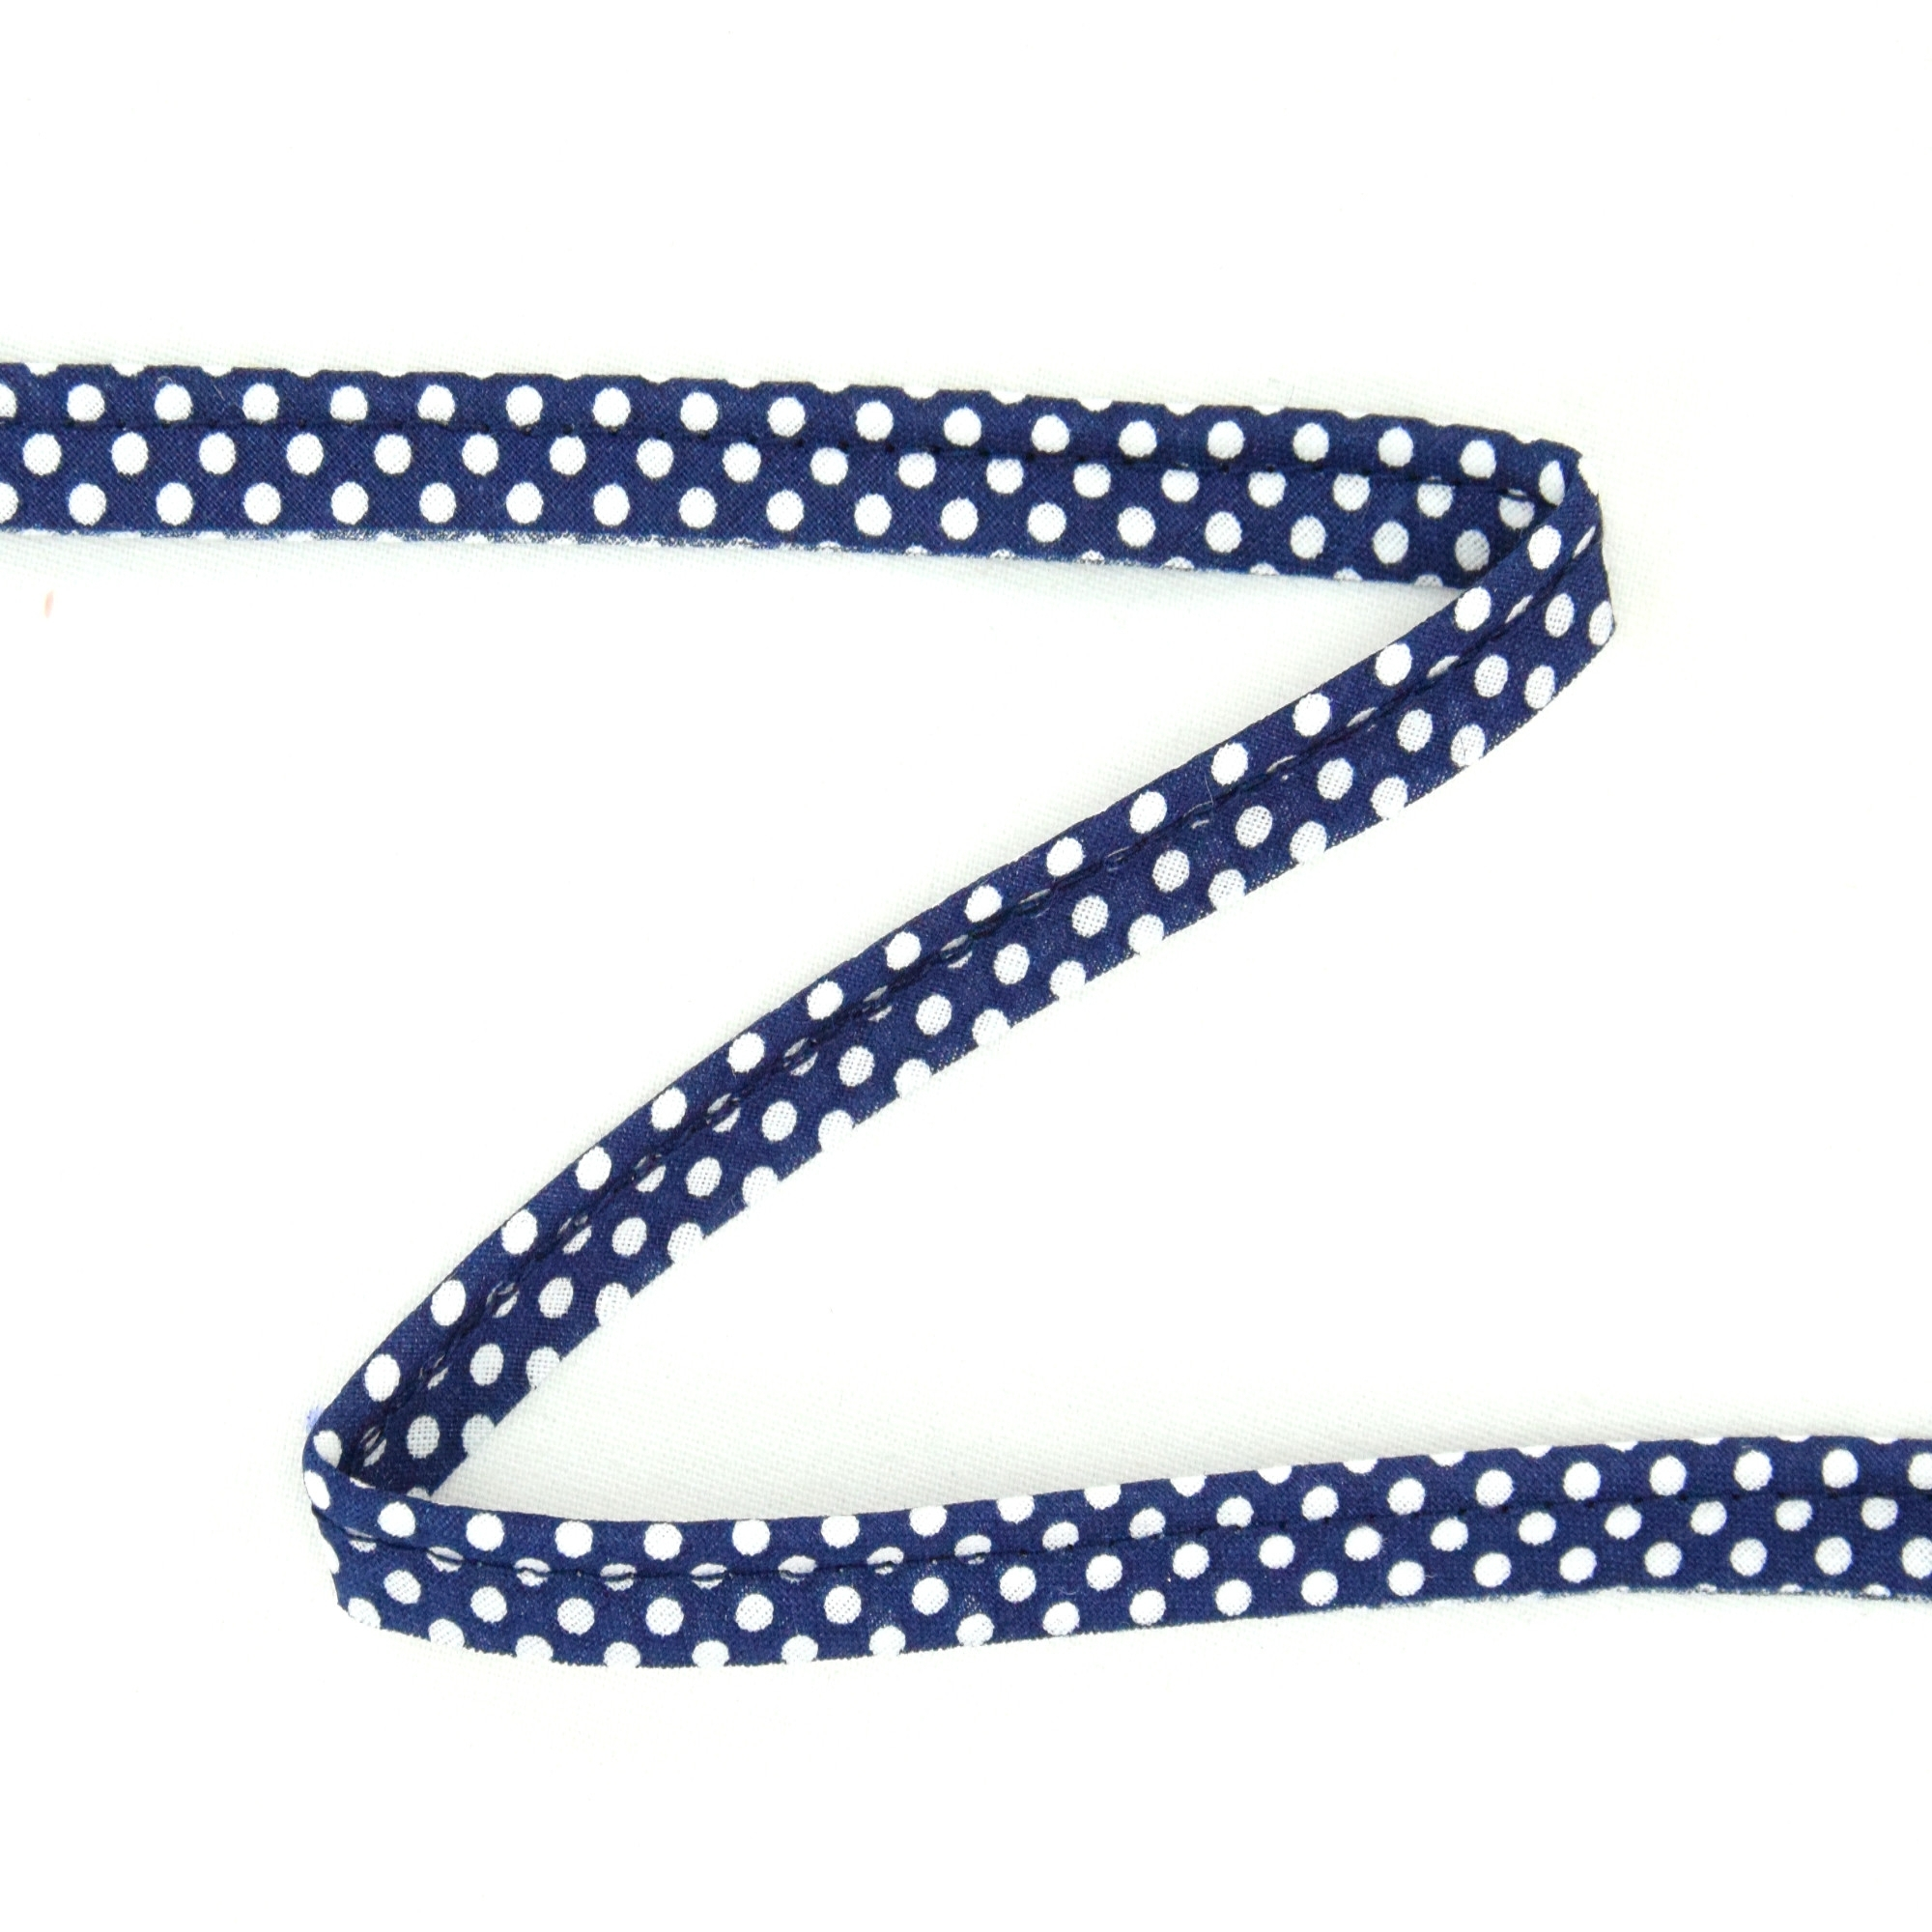 Piping ribbon Dots, marine-wit | 1822-23 | blau